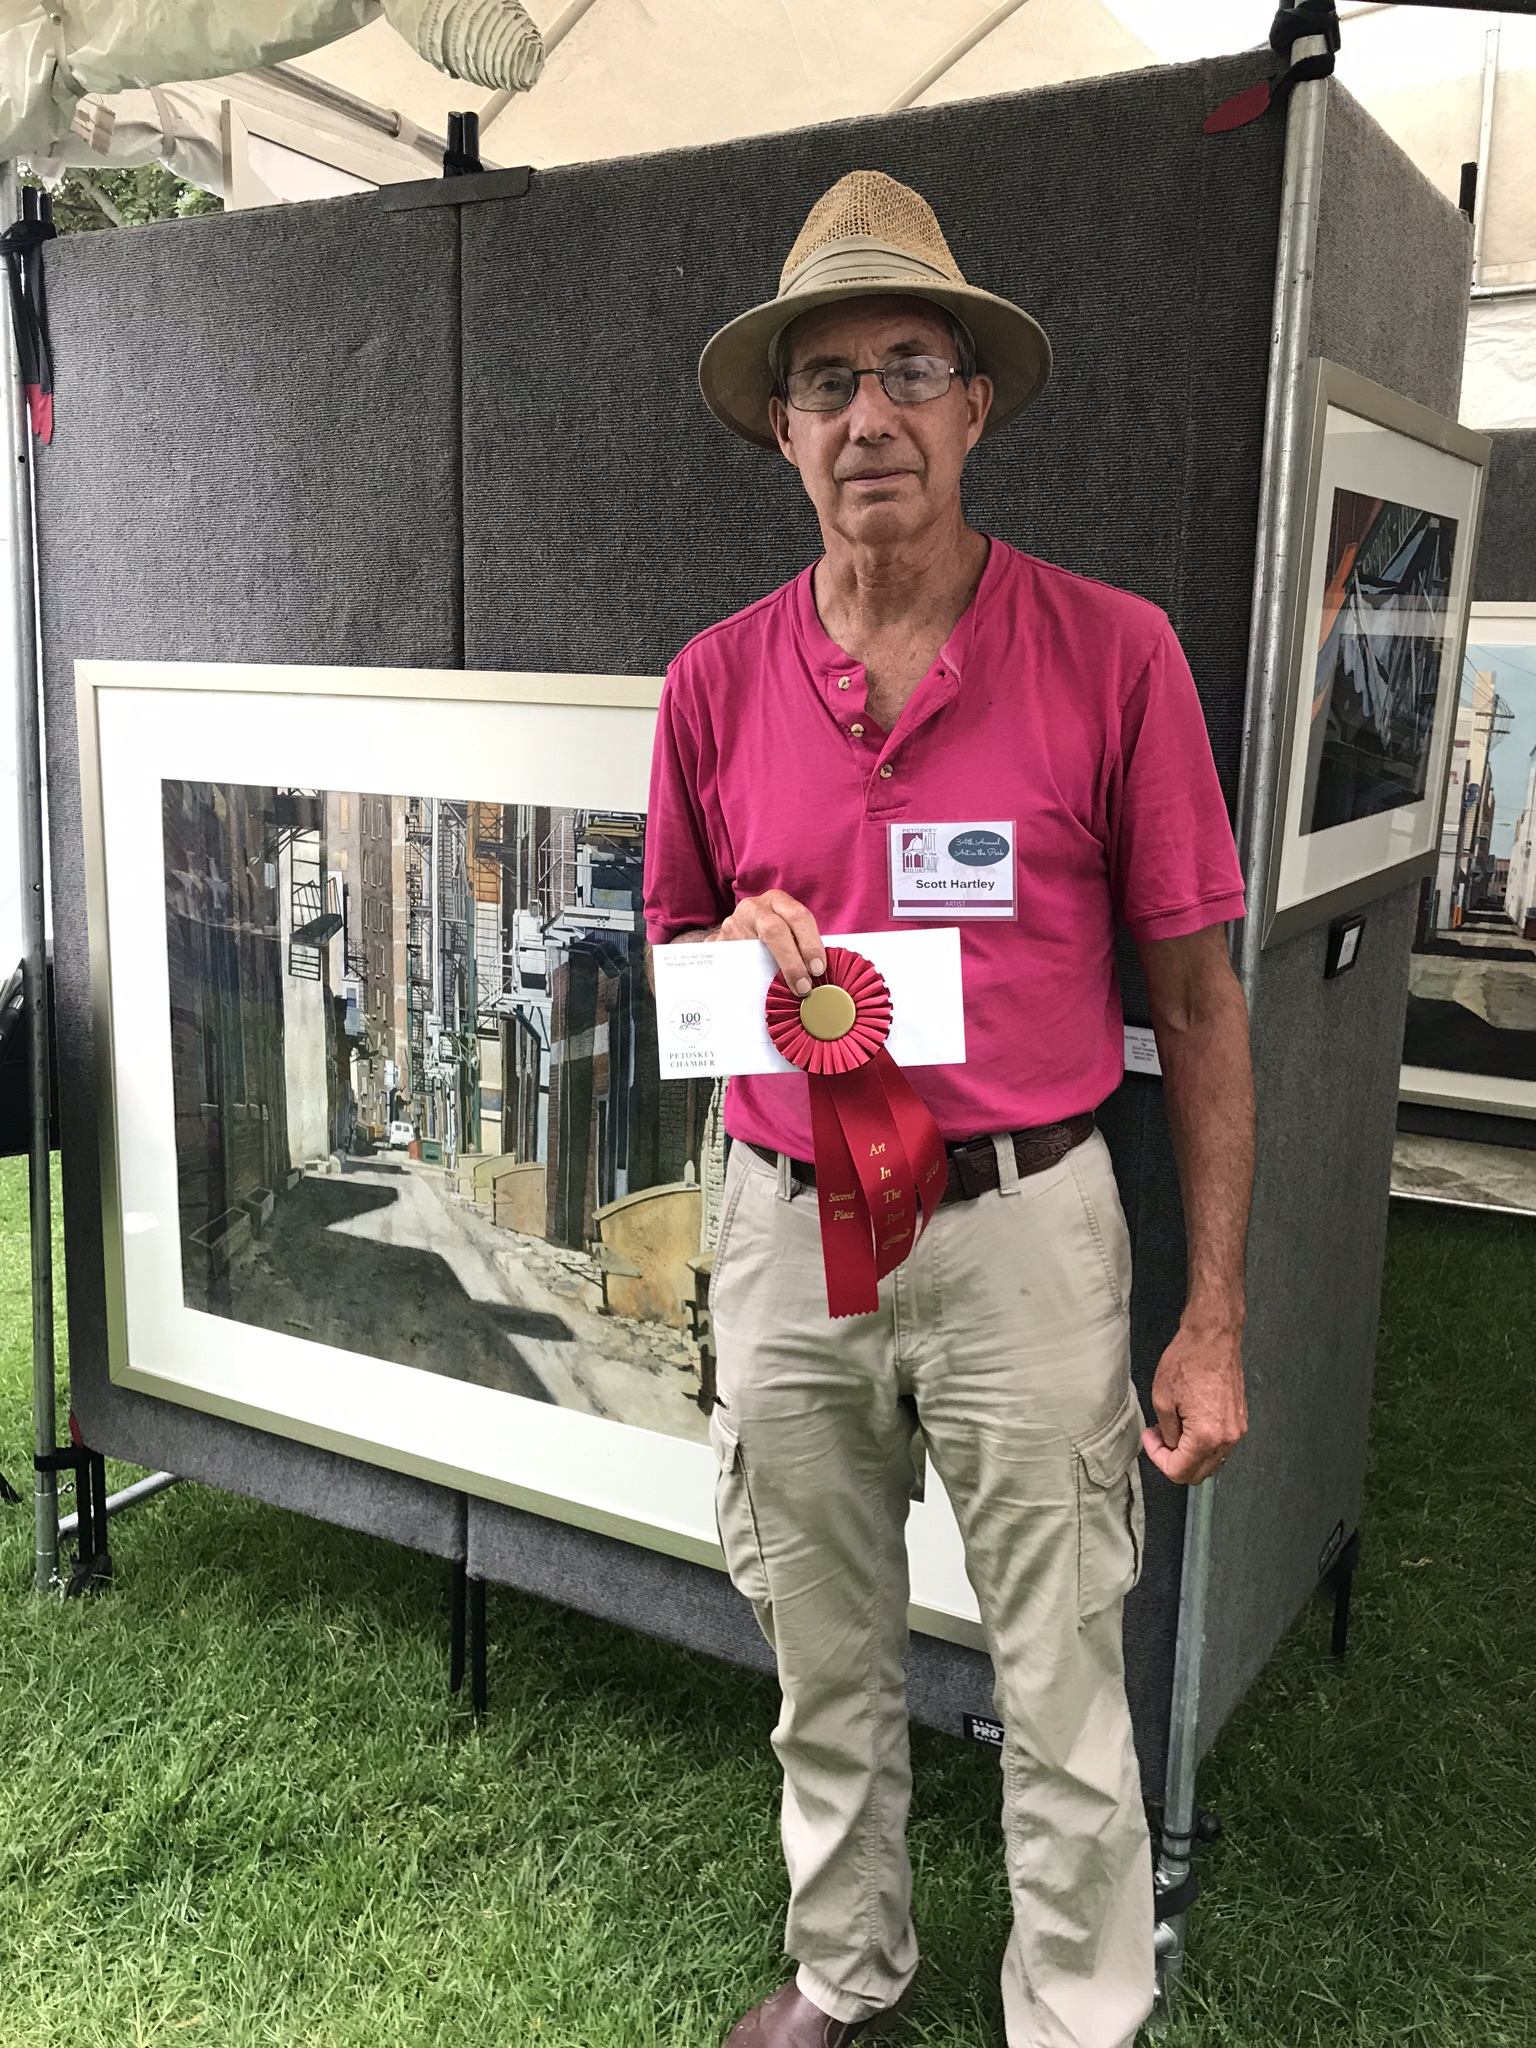 Scott Hartley - Second Place - 2018 Petoskey Art in the Park